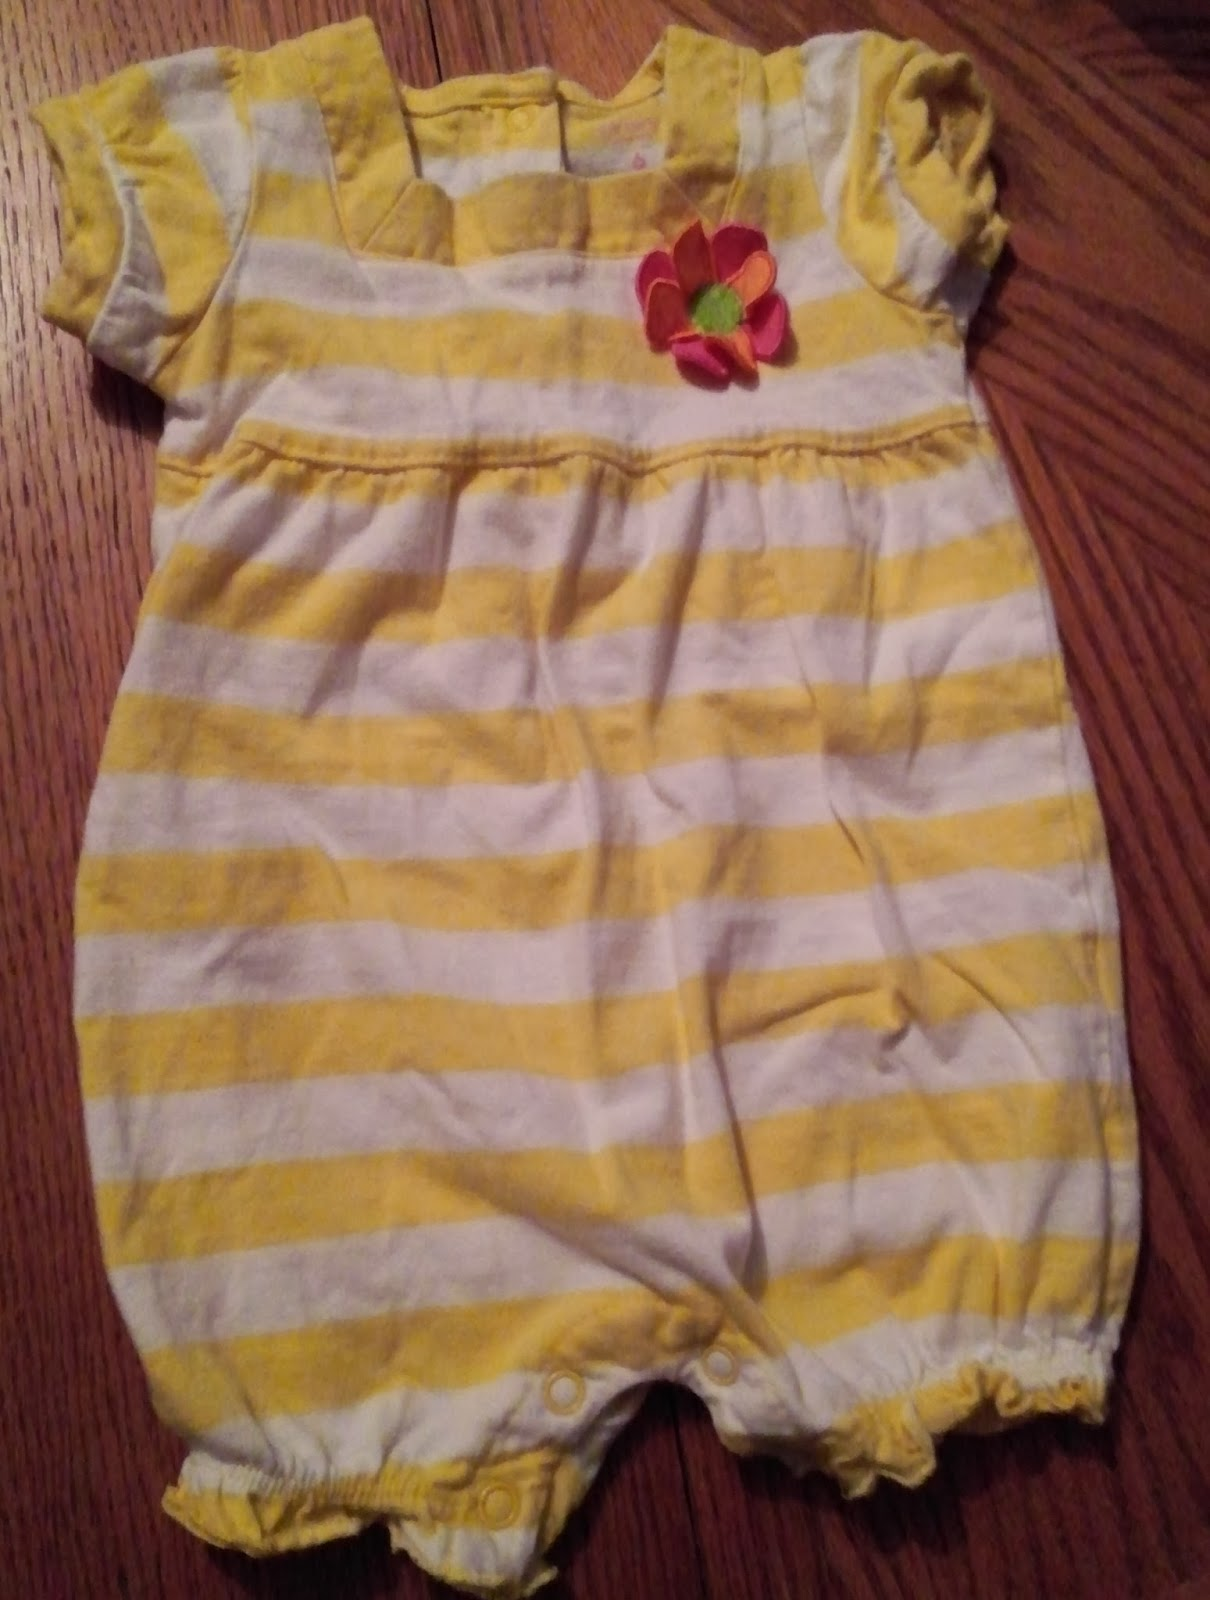 http://www.swapdom.com/item/0119596258112/carter-s-romper-size-6-months